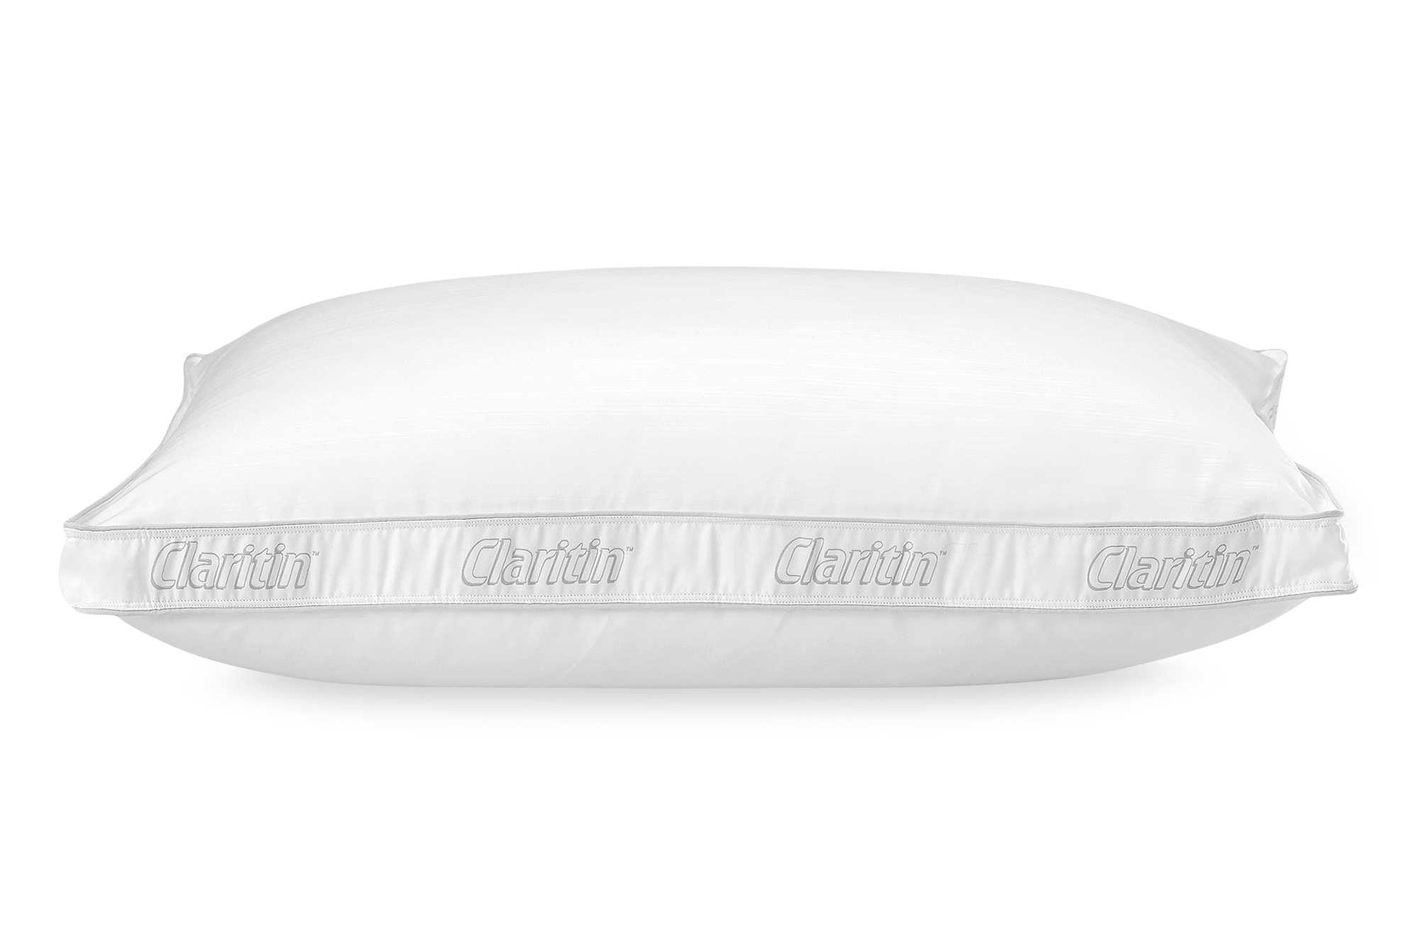 Claritin Anti-Allergen Embossed Side Sleeper Pillow